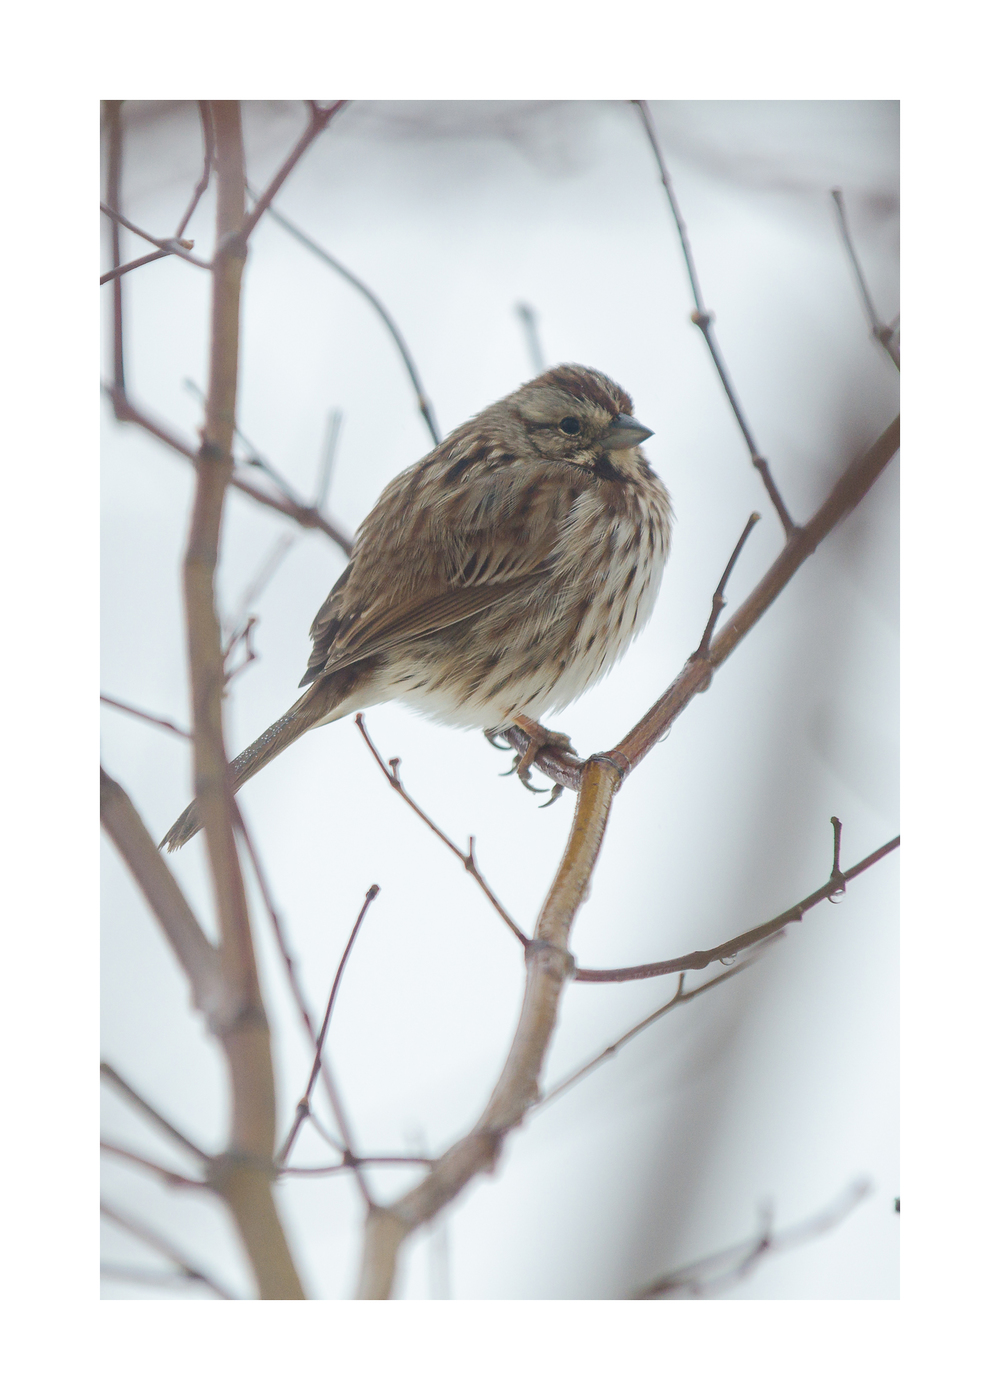 Song Sparrow  - Nikon D7000 ISO 800 200mm f/5.0 1/1250 sec.